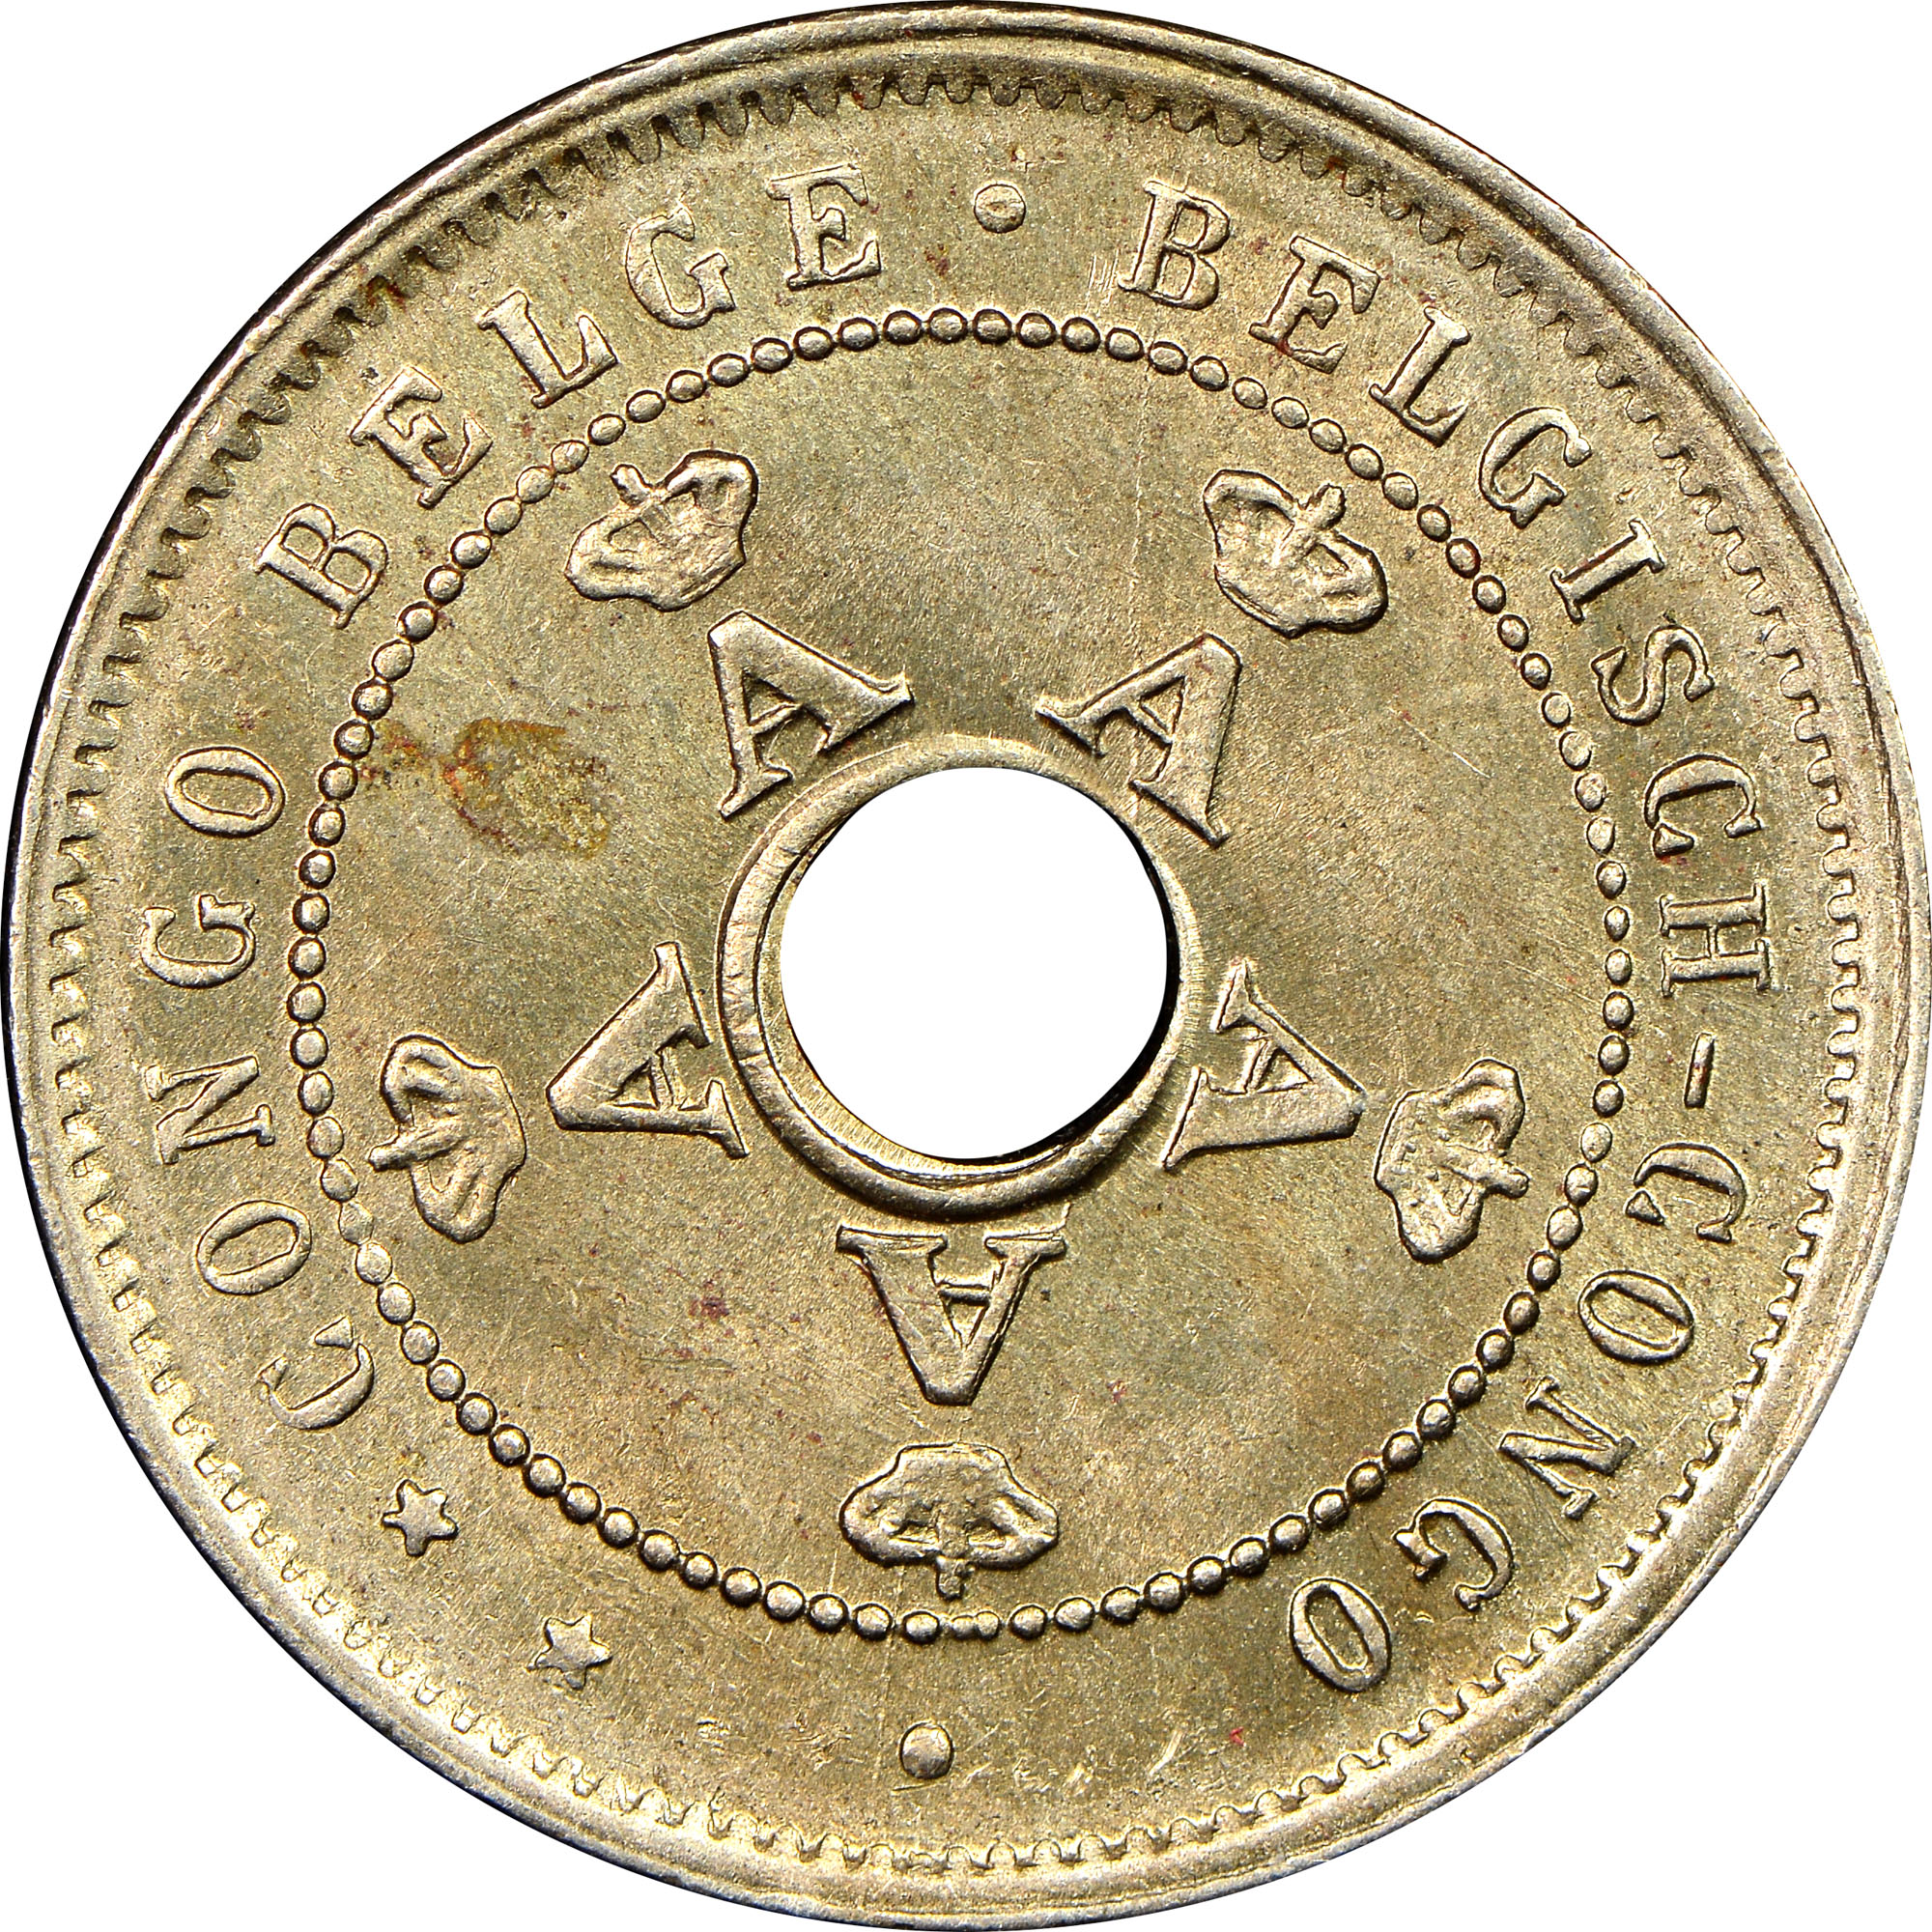 5 CENTIMES COIN 1921 YEAR KM#17 BELGIAN CONGO